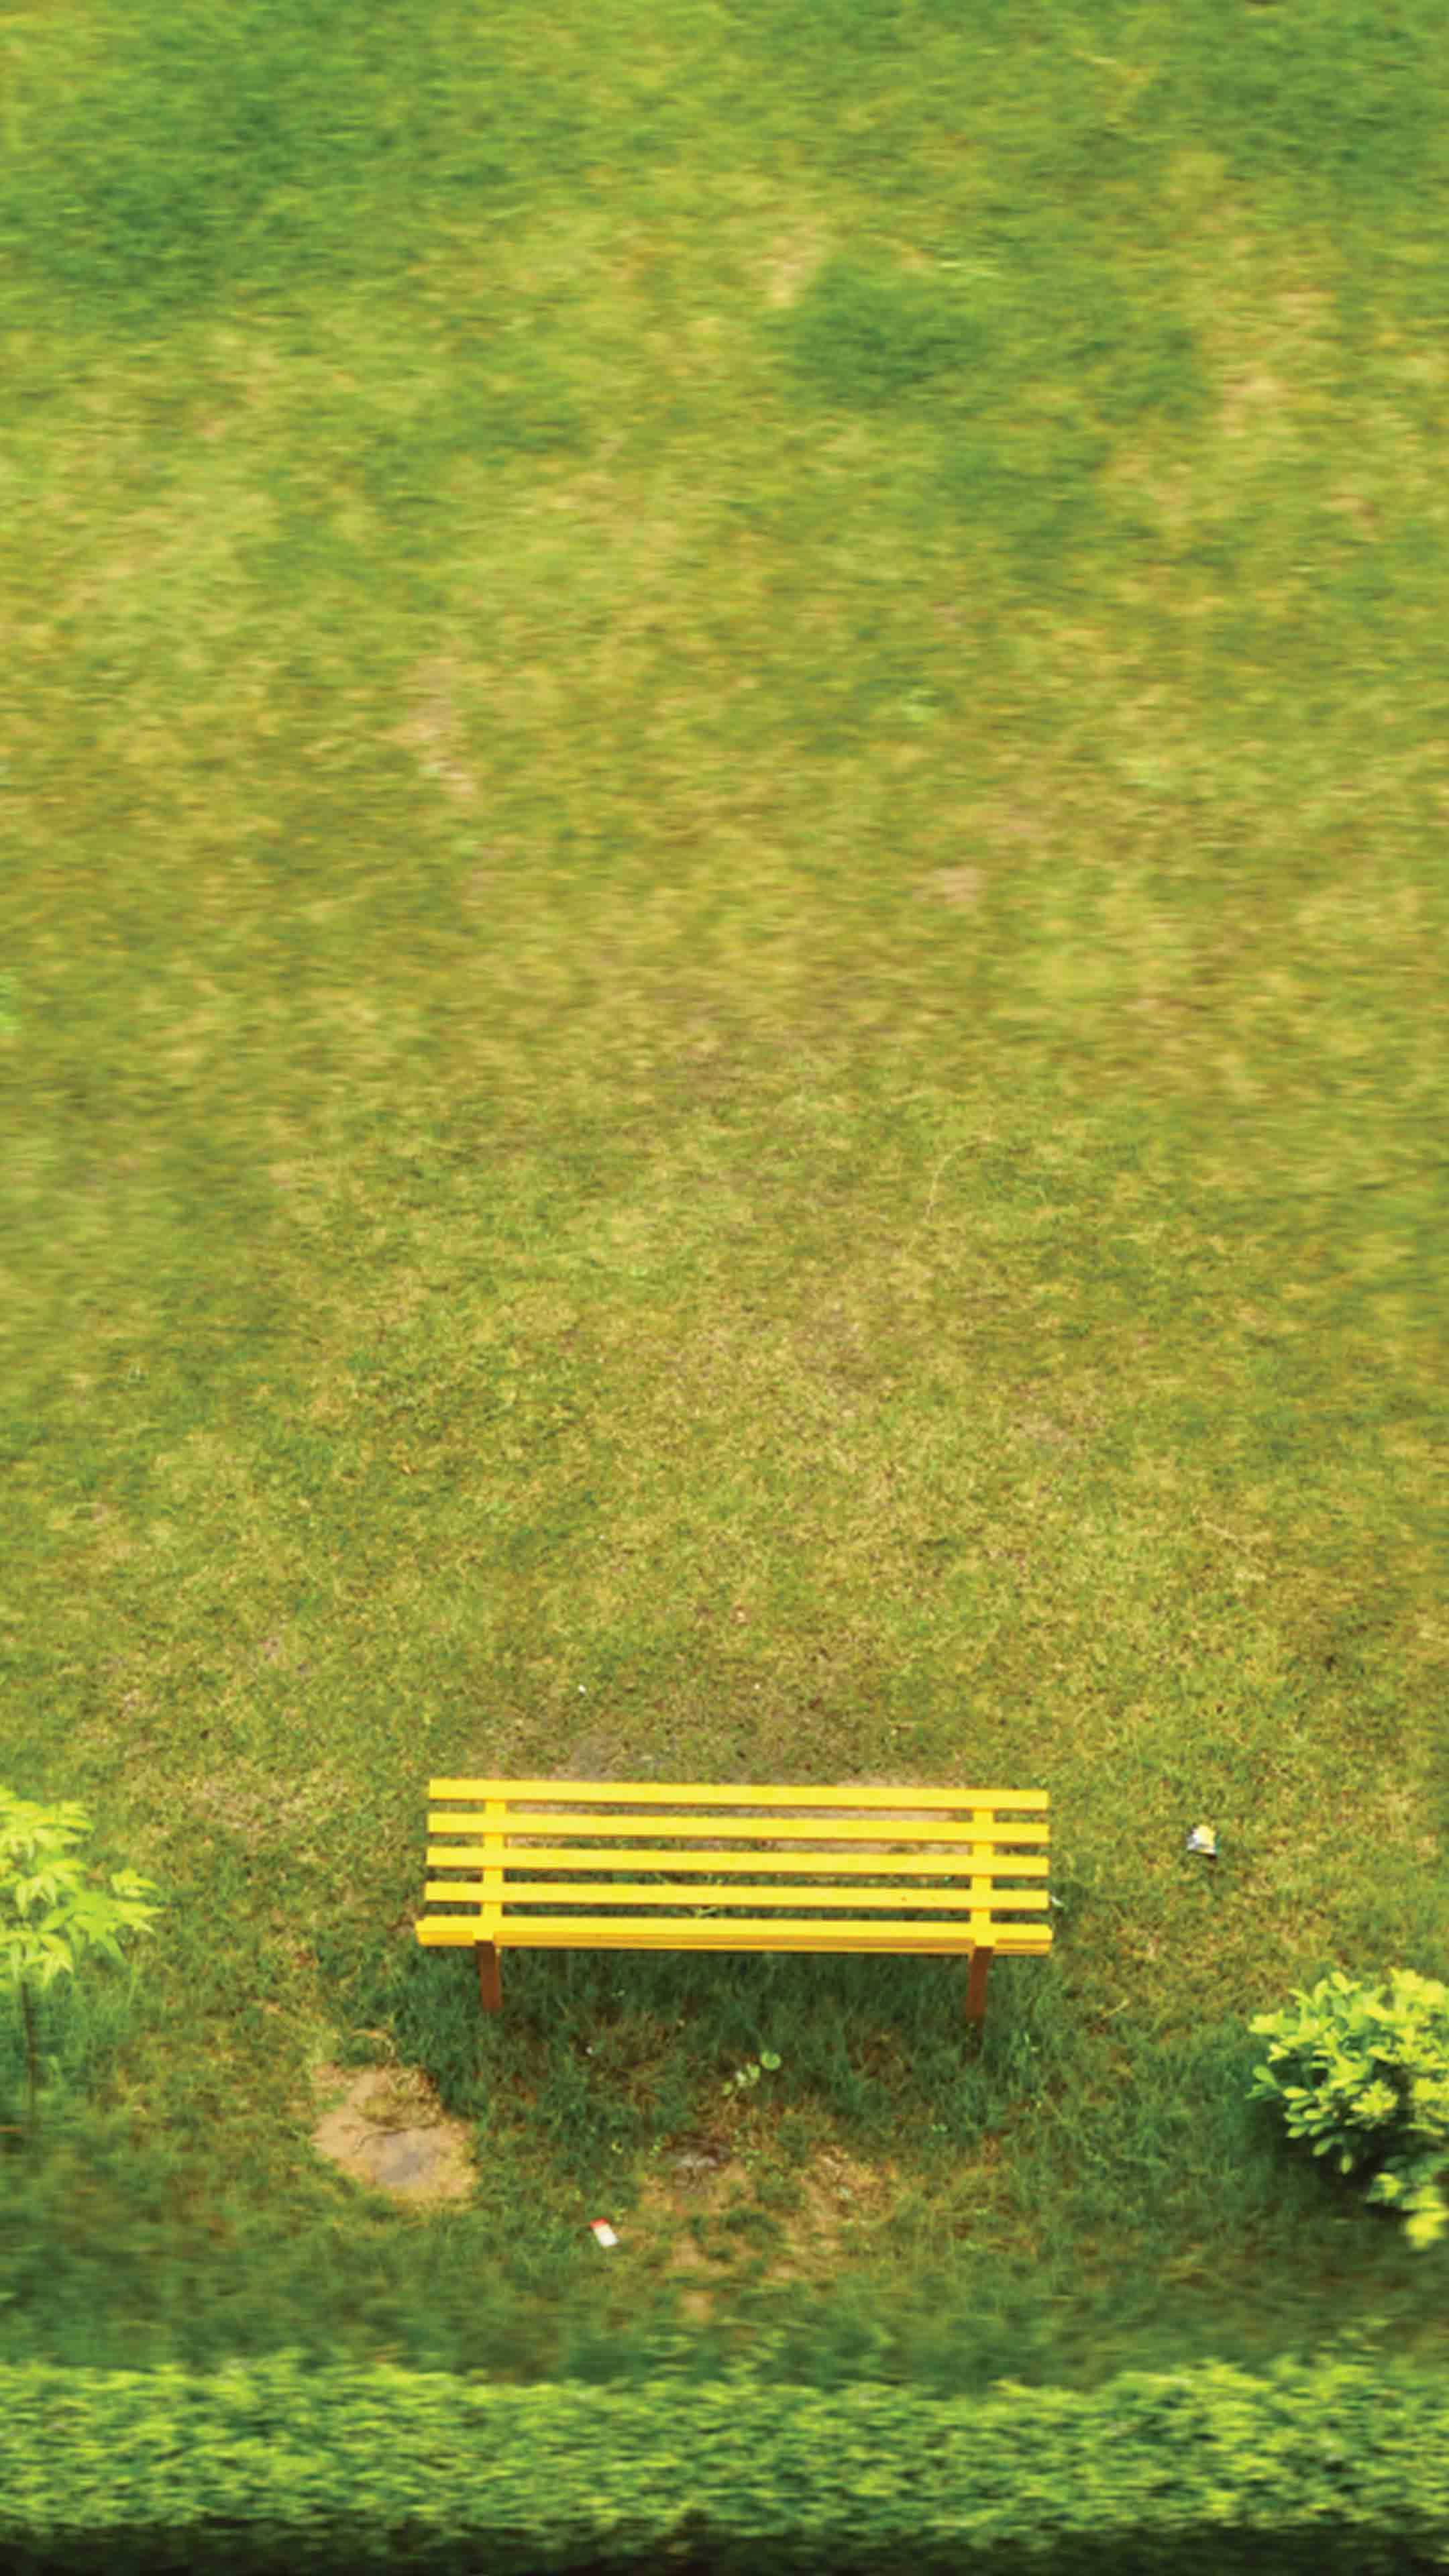 yellow bench mobile wallpaper minimalist